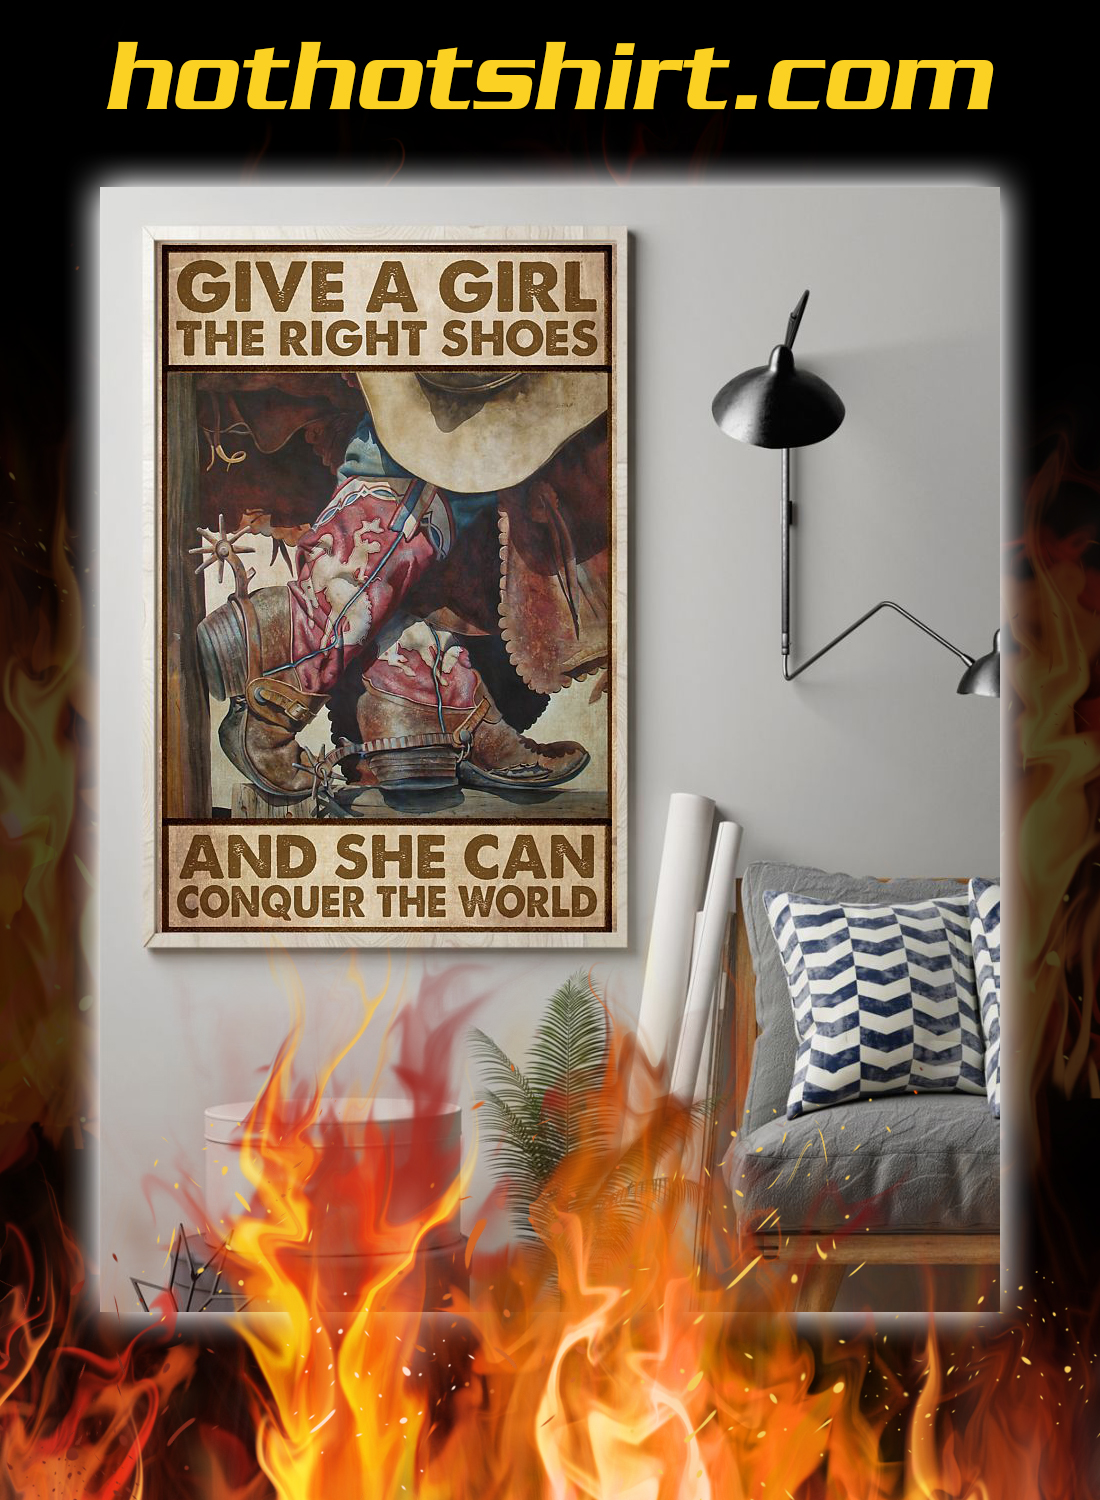 Give a girl the right shoes cowgirl poster 1